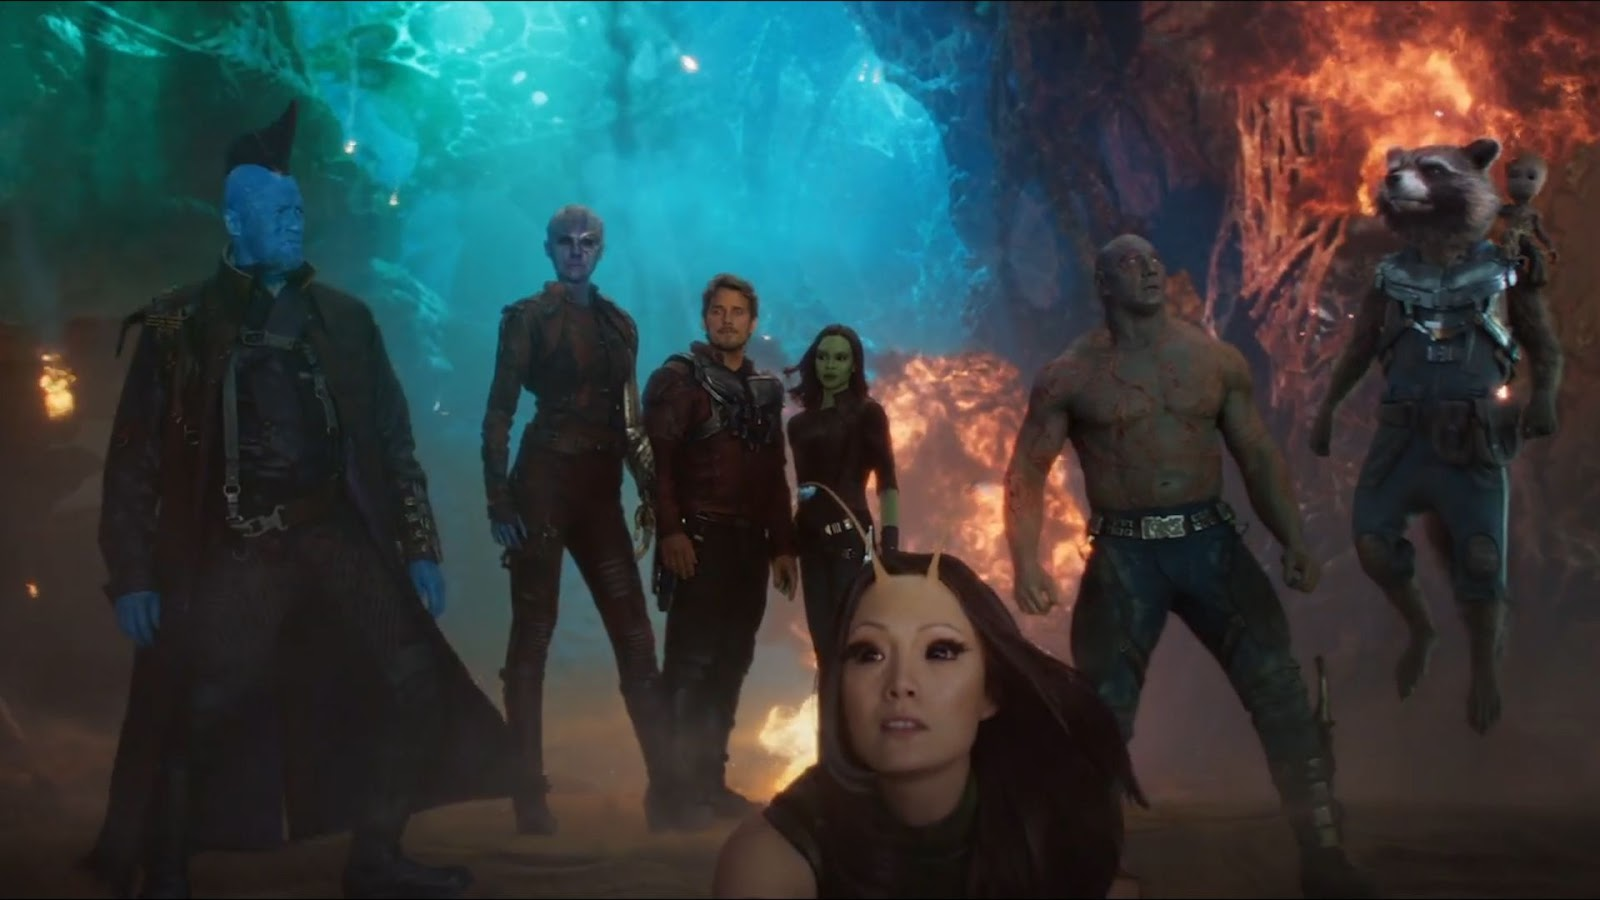 MOVIES: Guardians of the Galaxy Vol. 2 - Review